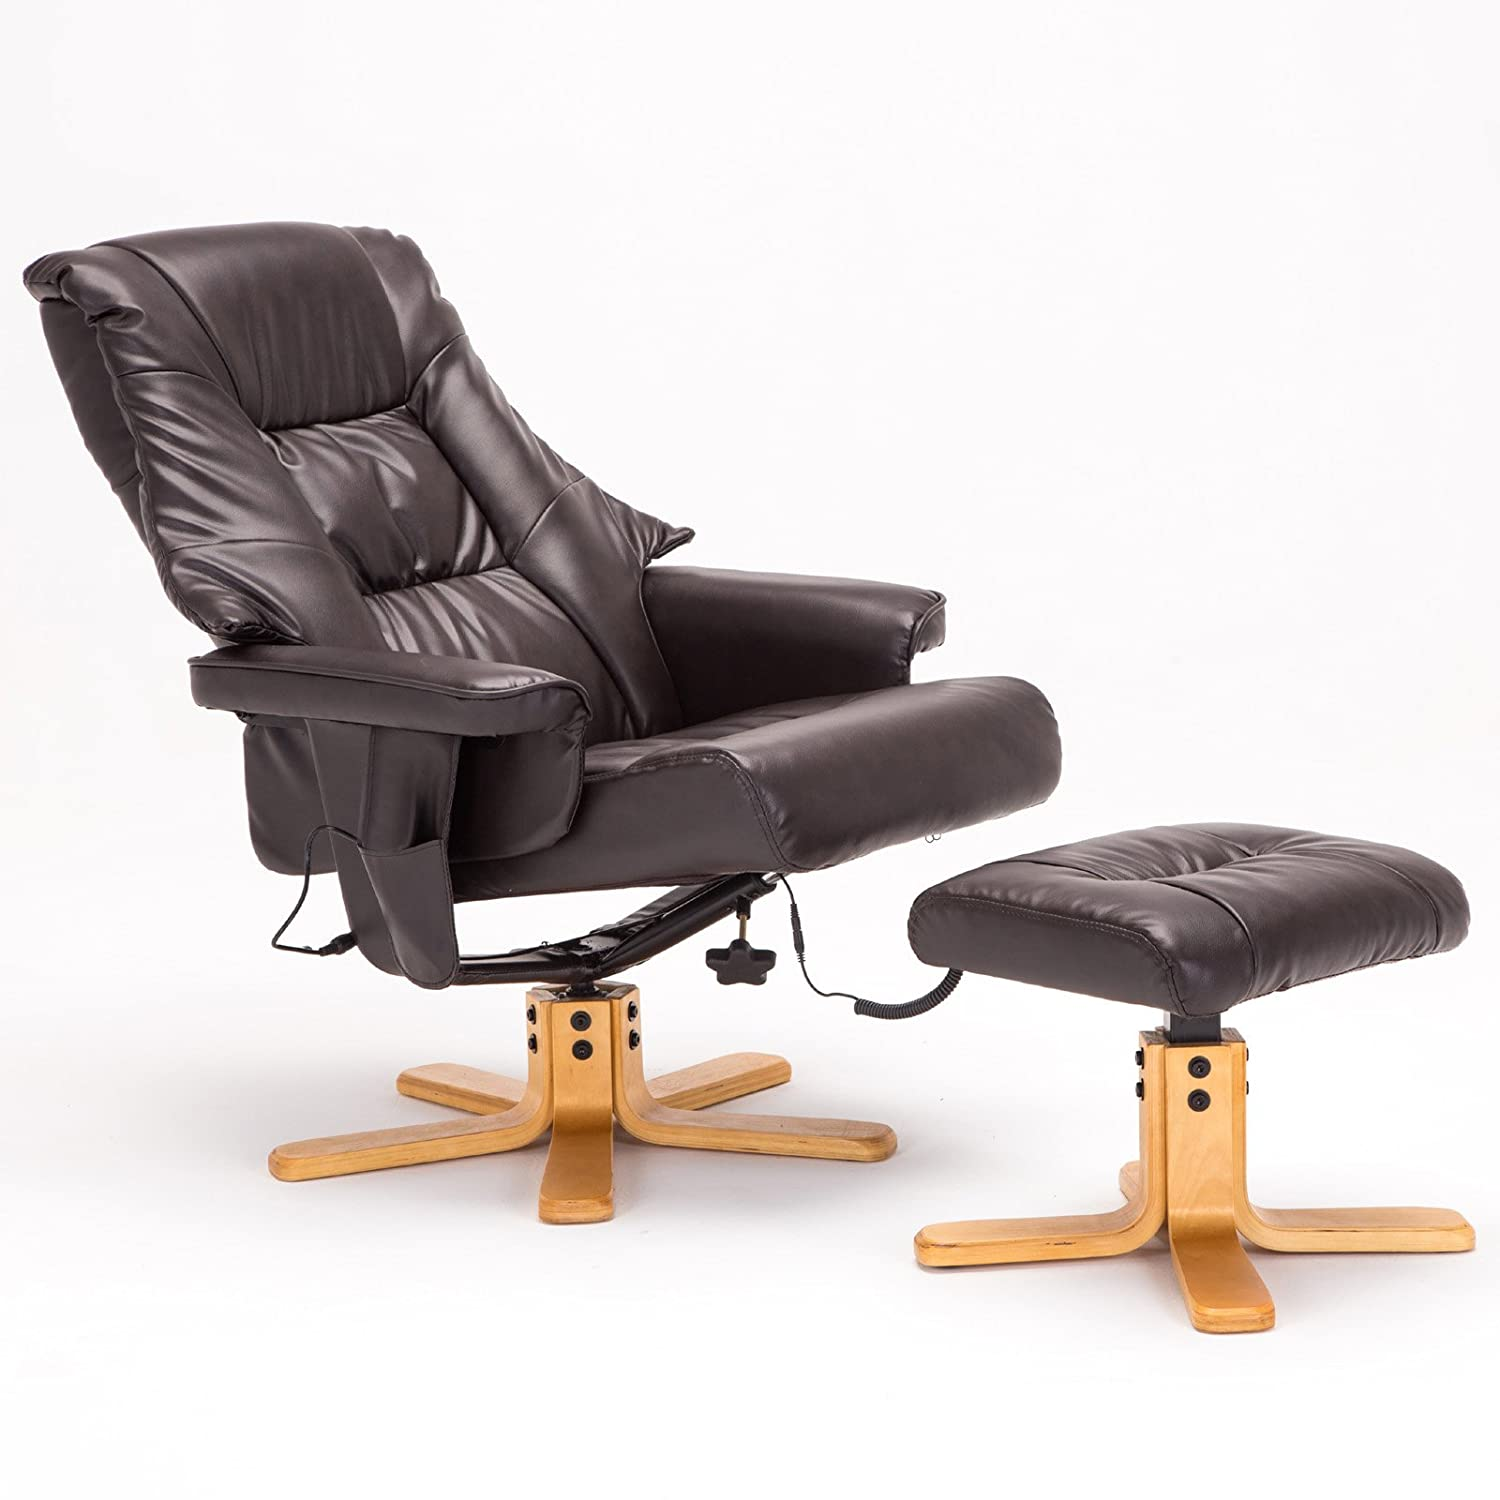 Amazon SGS Leather Massage Recliner Chair with Ottoman set